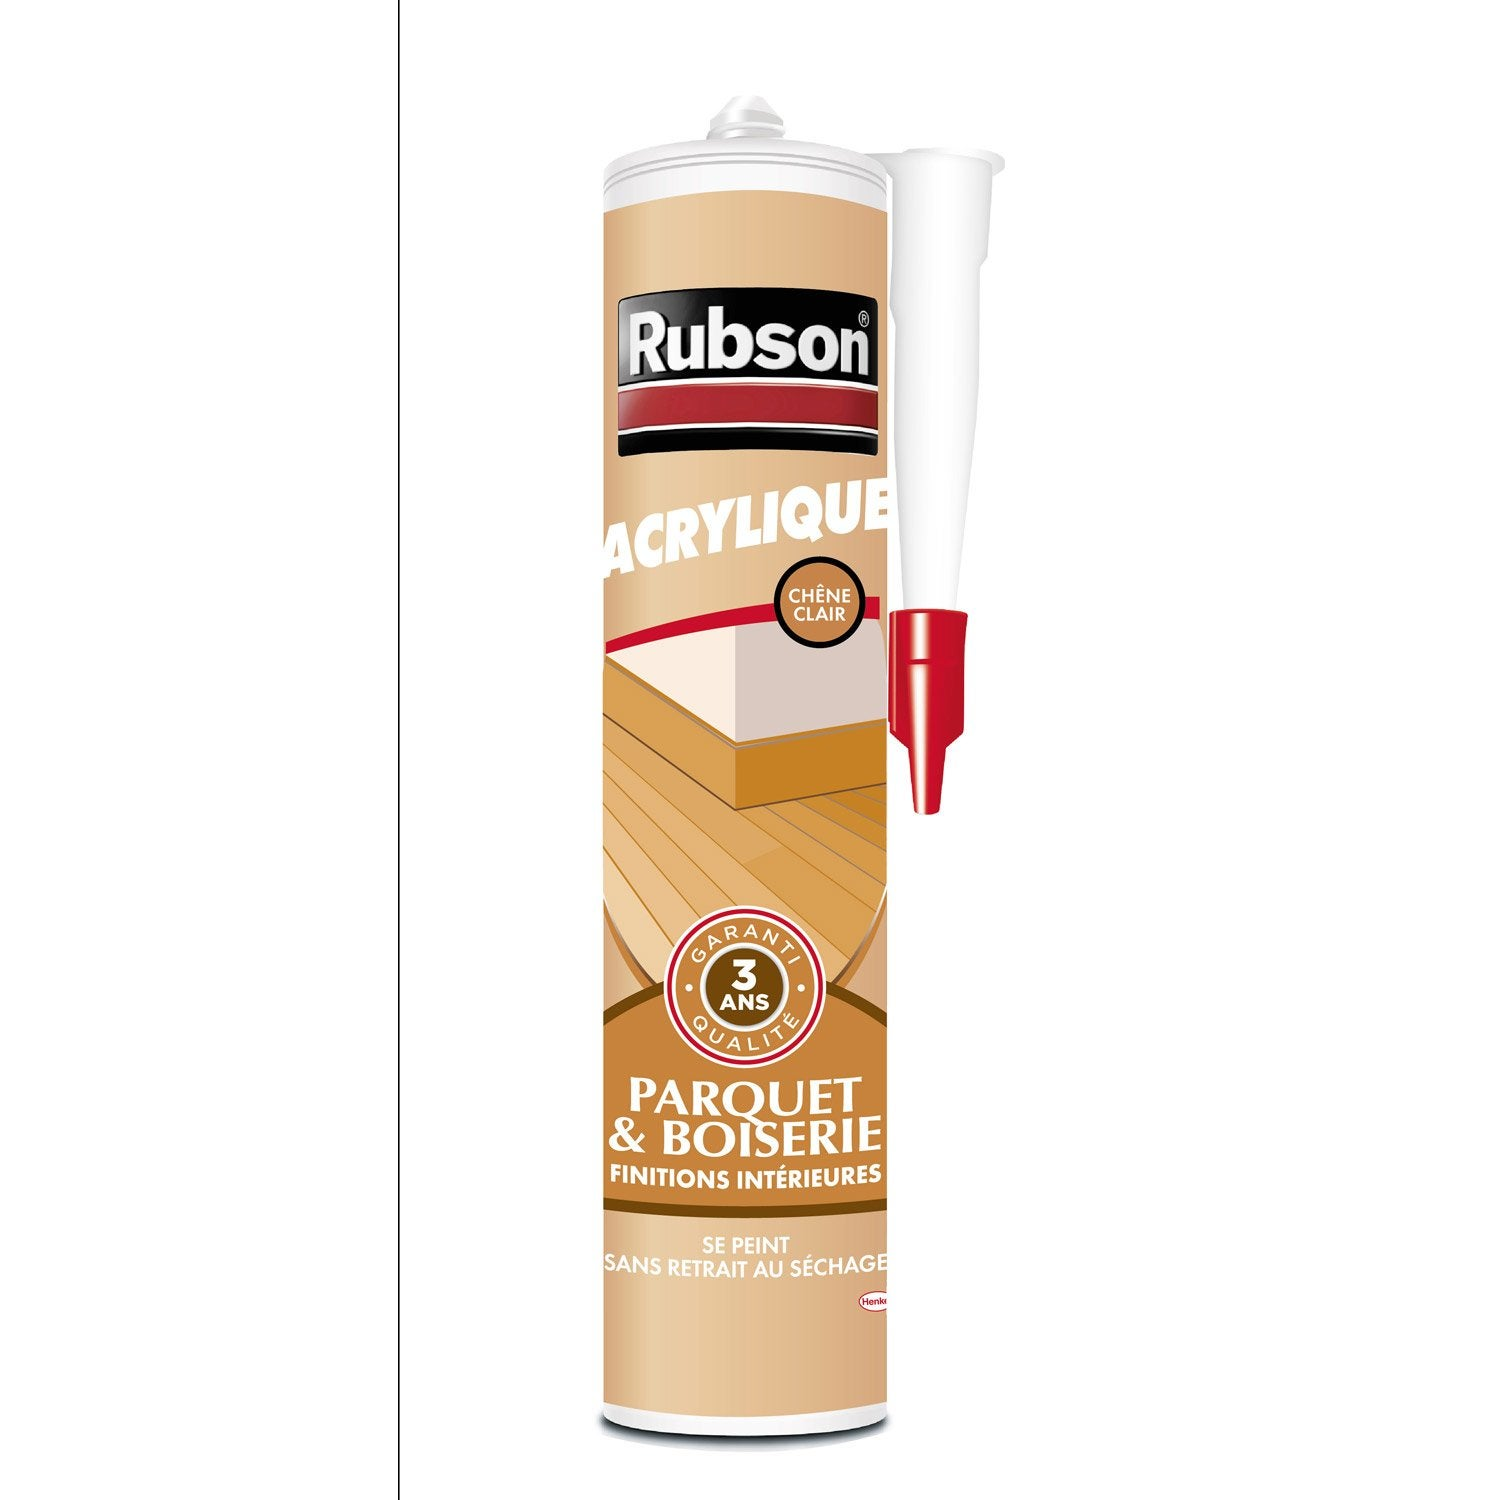 Mur En Bois Leroy Merlin : RUBSON mur int?rieur Finition 280 ml ch?ne clair Leroy Merlin